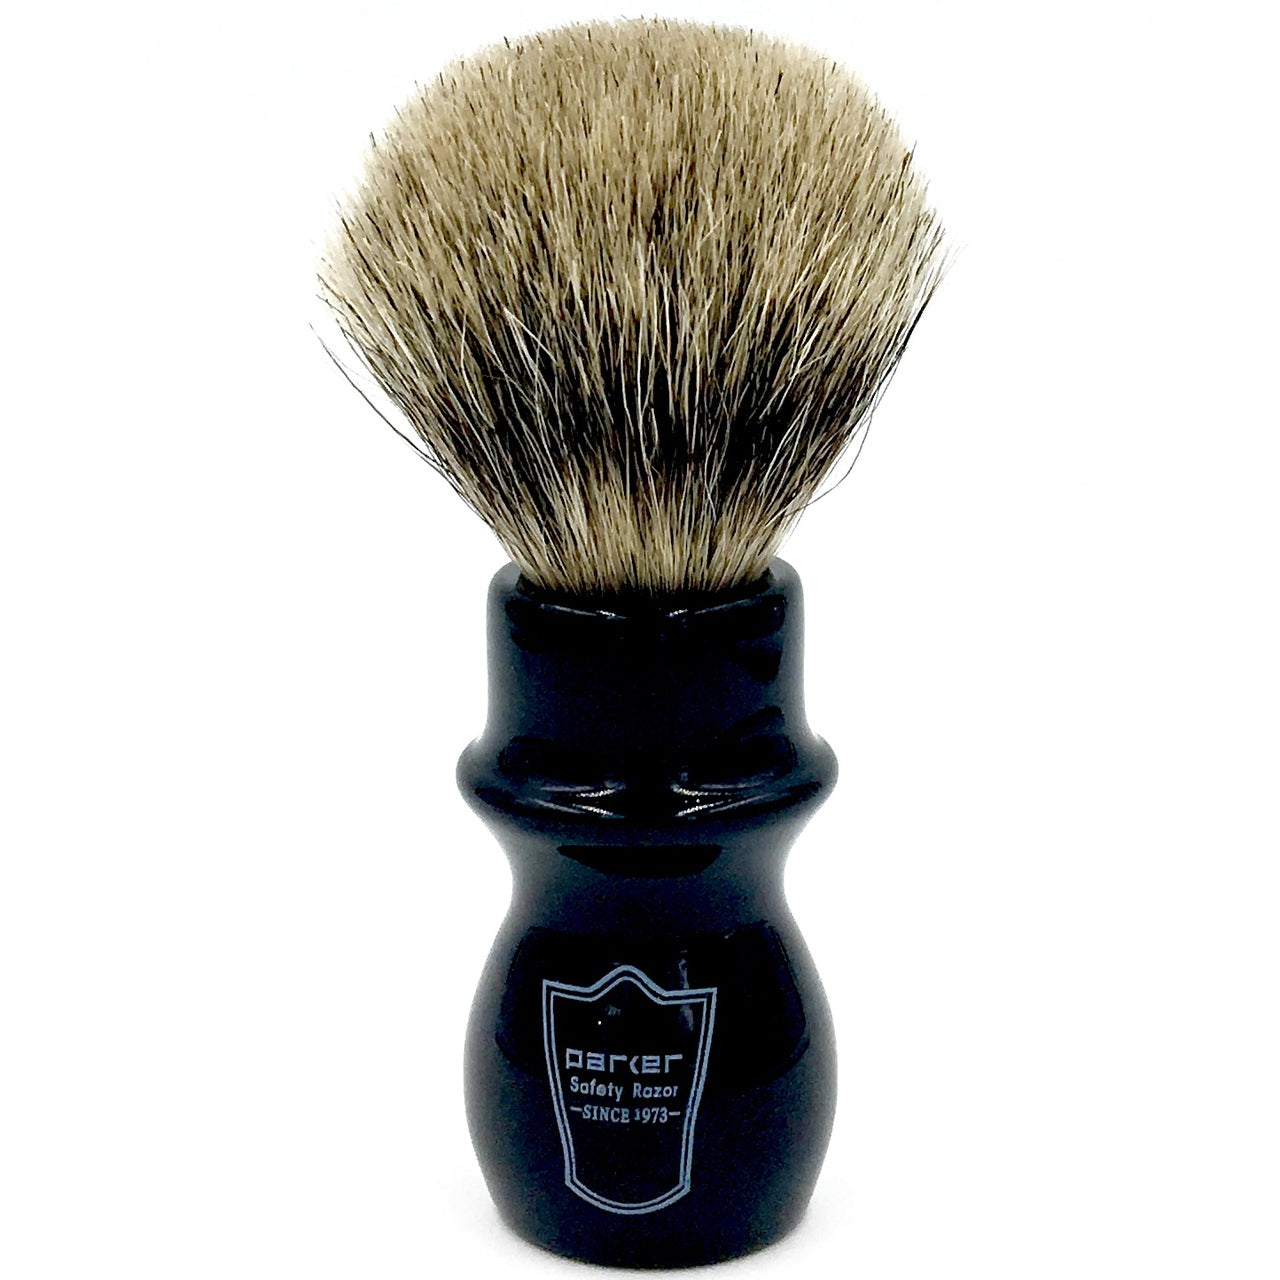 Parker - BMPB Black Mug Pure Badger Bristle Shaving Brush